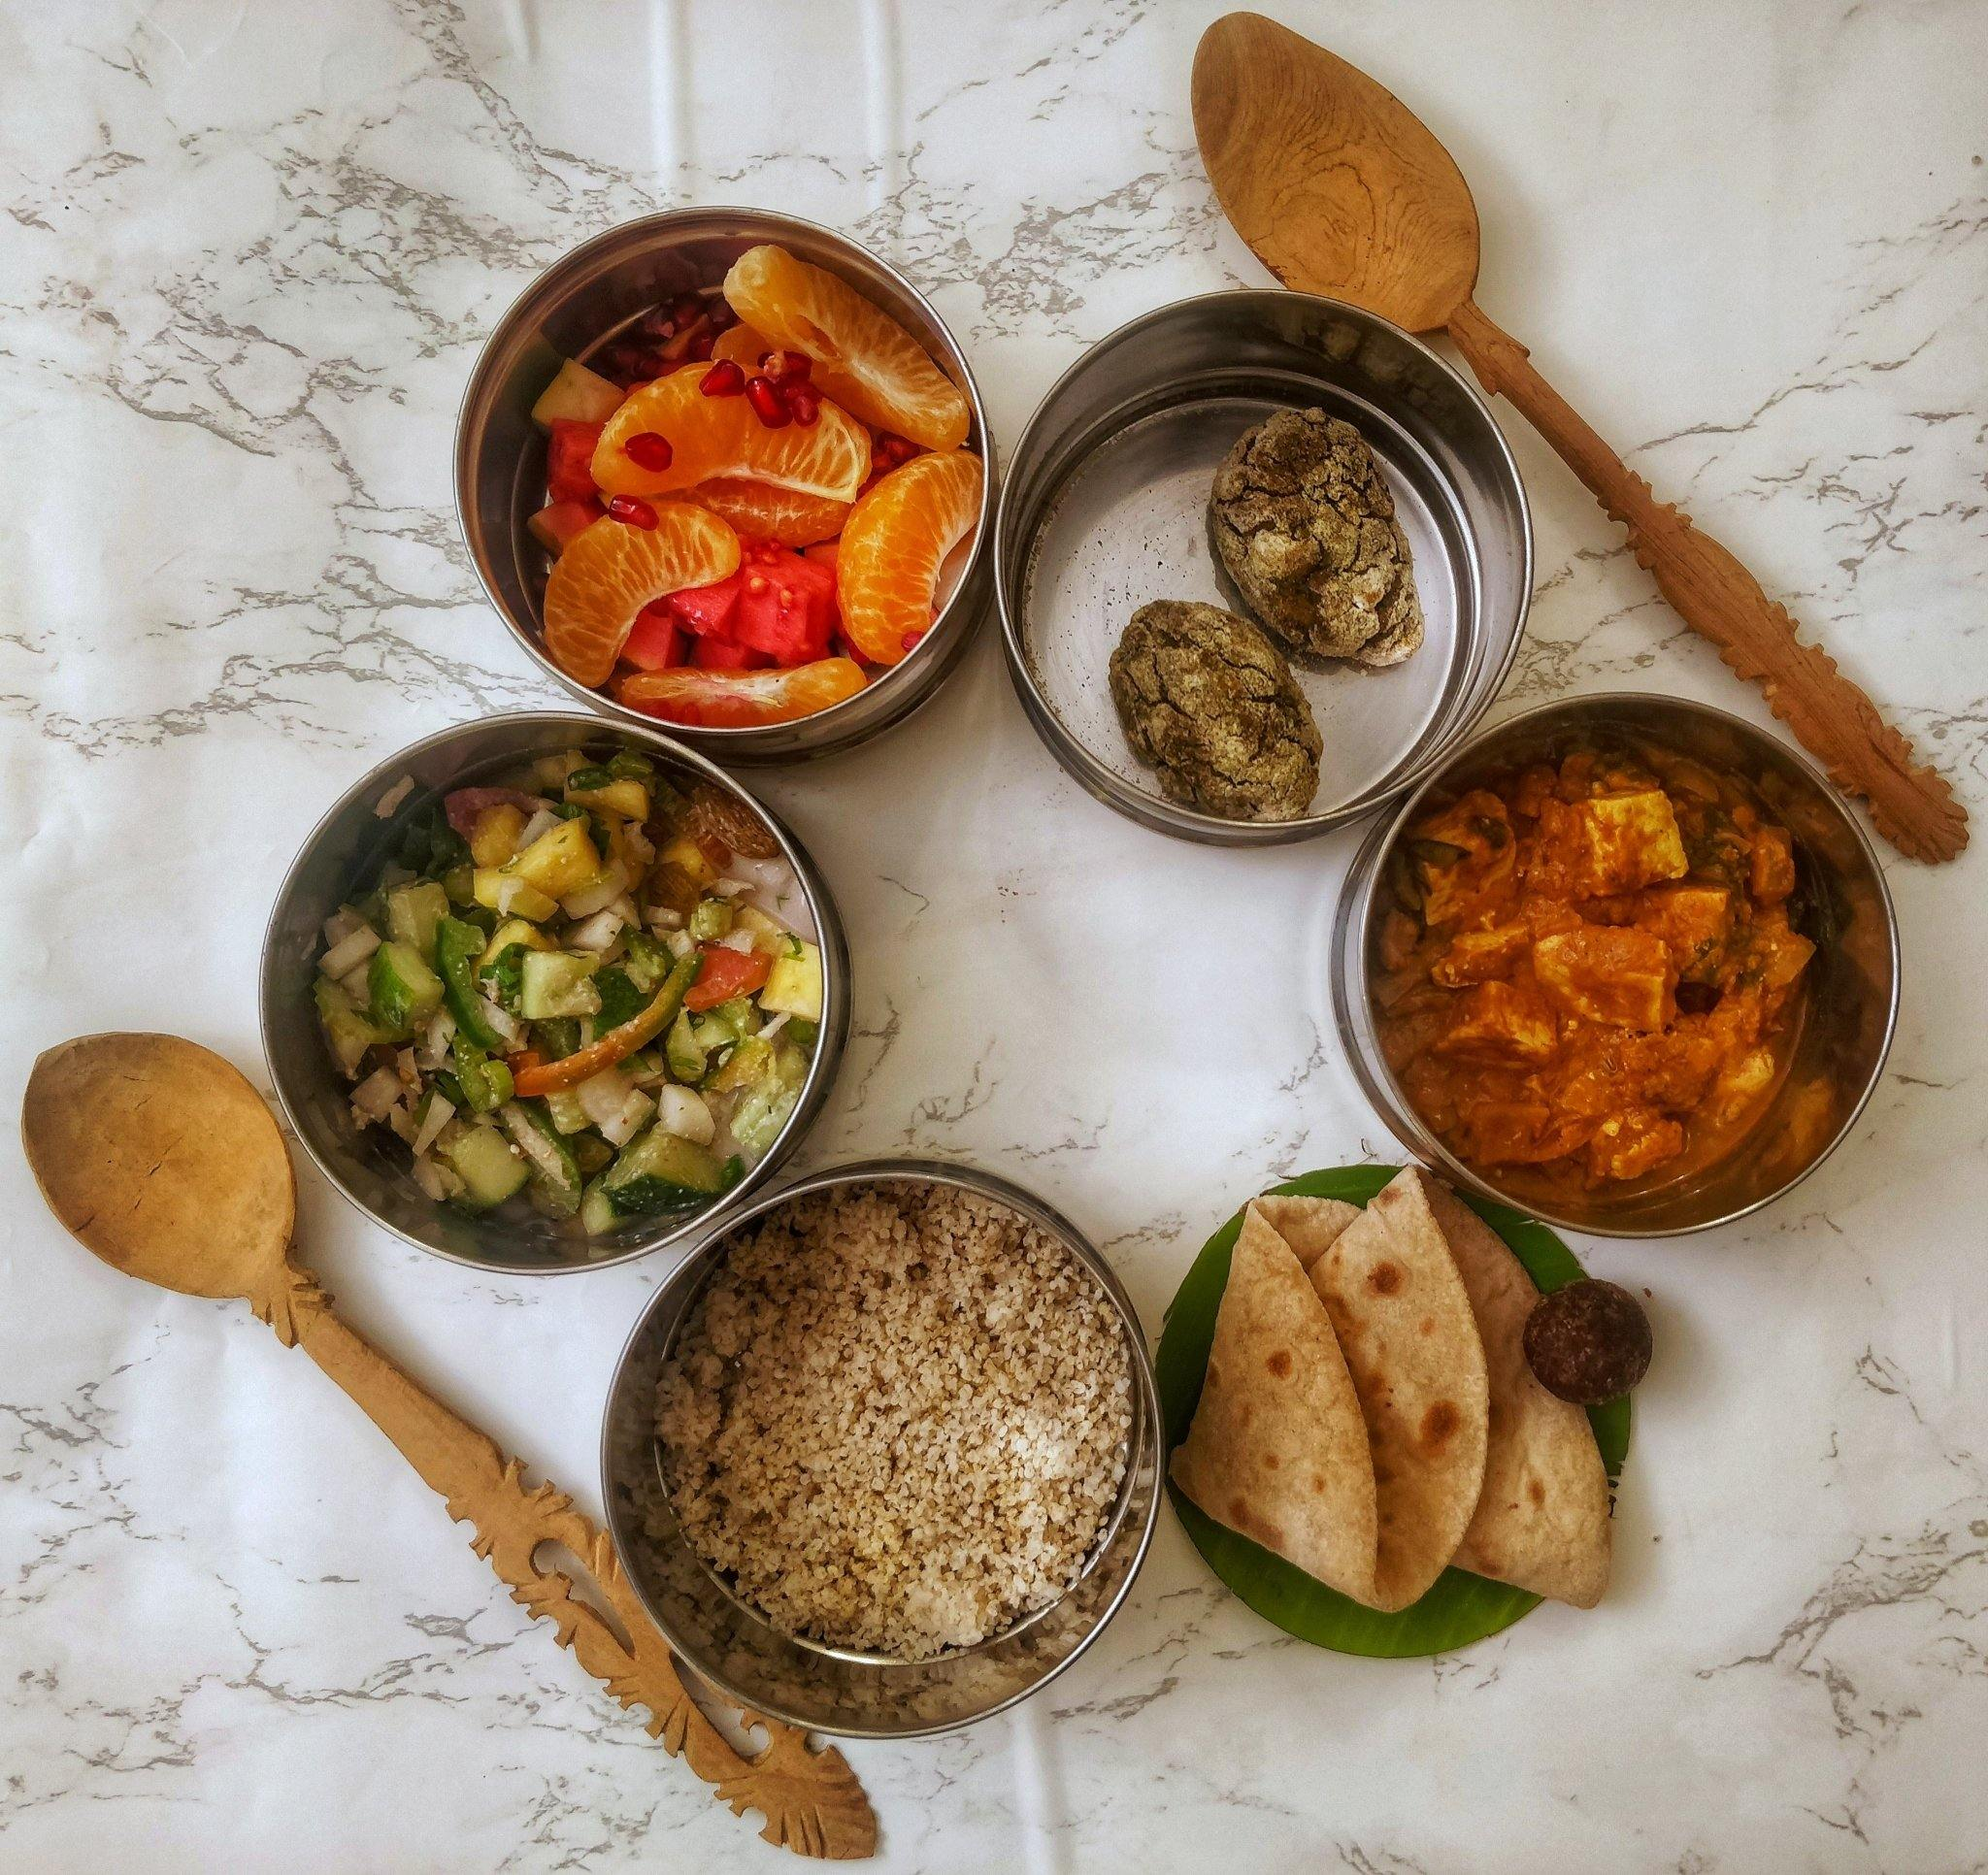 Plant-Based Combo Meals - Starter Pack | Healthy Food | Vegan | Lunch & Dinner | Nutrition Balanced Diet | Restaurants Style | Weight Loss Diet | Whole Food Plant Based Meal - SampoornaAhara.com